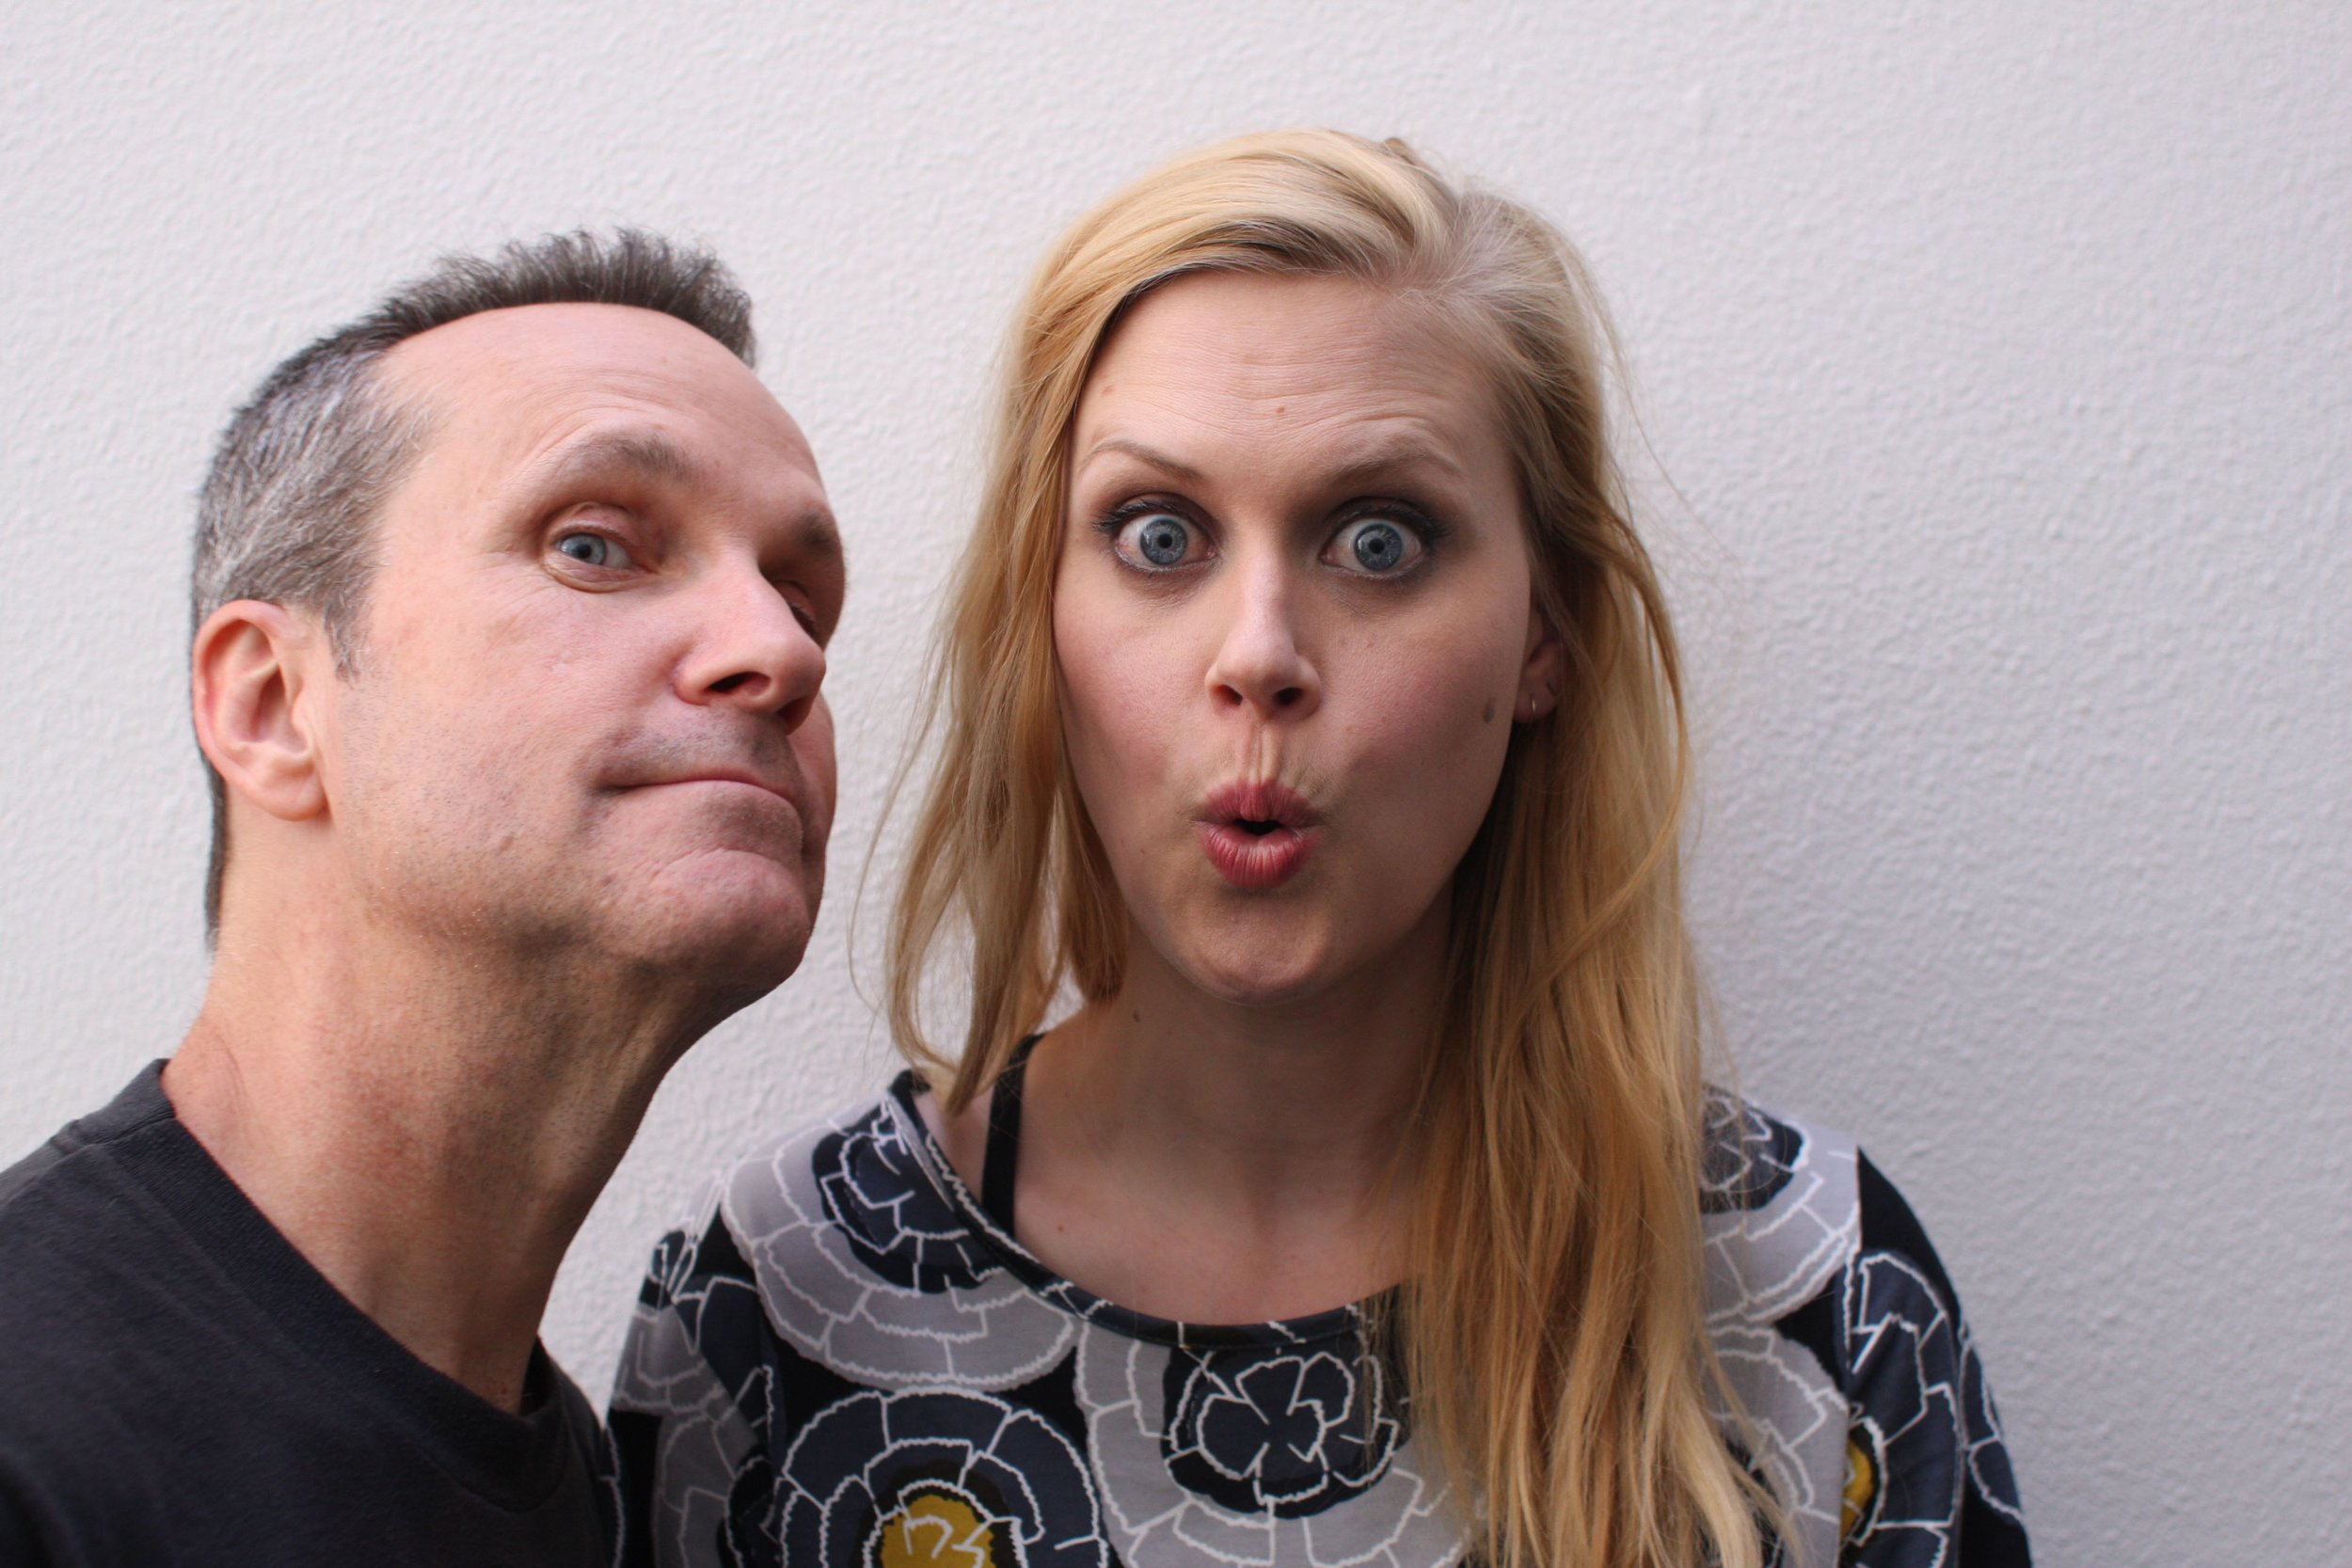 Never Not Funny: The Jimmy Pardo Podcast#1614 Janet Varney(May 15th, 2015) - Freezing the frame with Janet Varney.